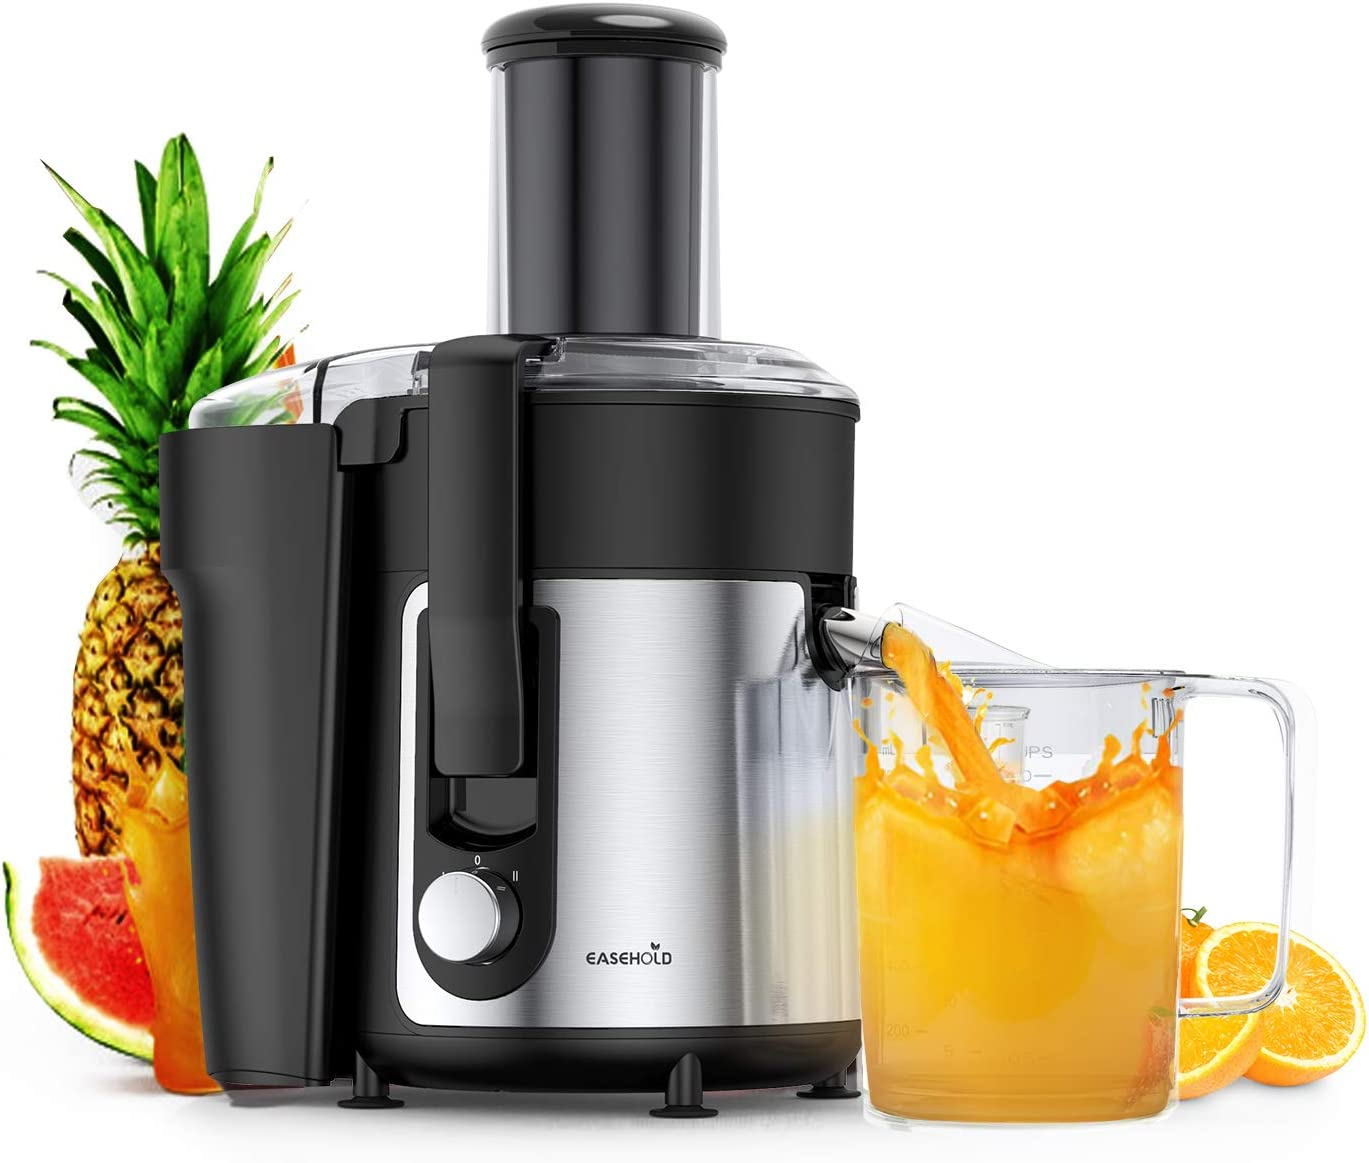 Easehold Juicer Machines Extractor 800W Centrifugal Juicers Electric Anti-Drip Dual Speed BPA-Free with Juice Jug and Pulp Container for Fruit Vegetable